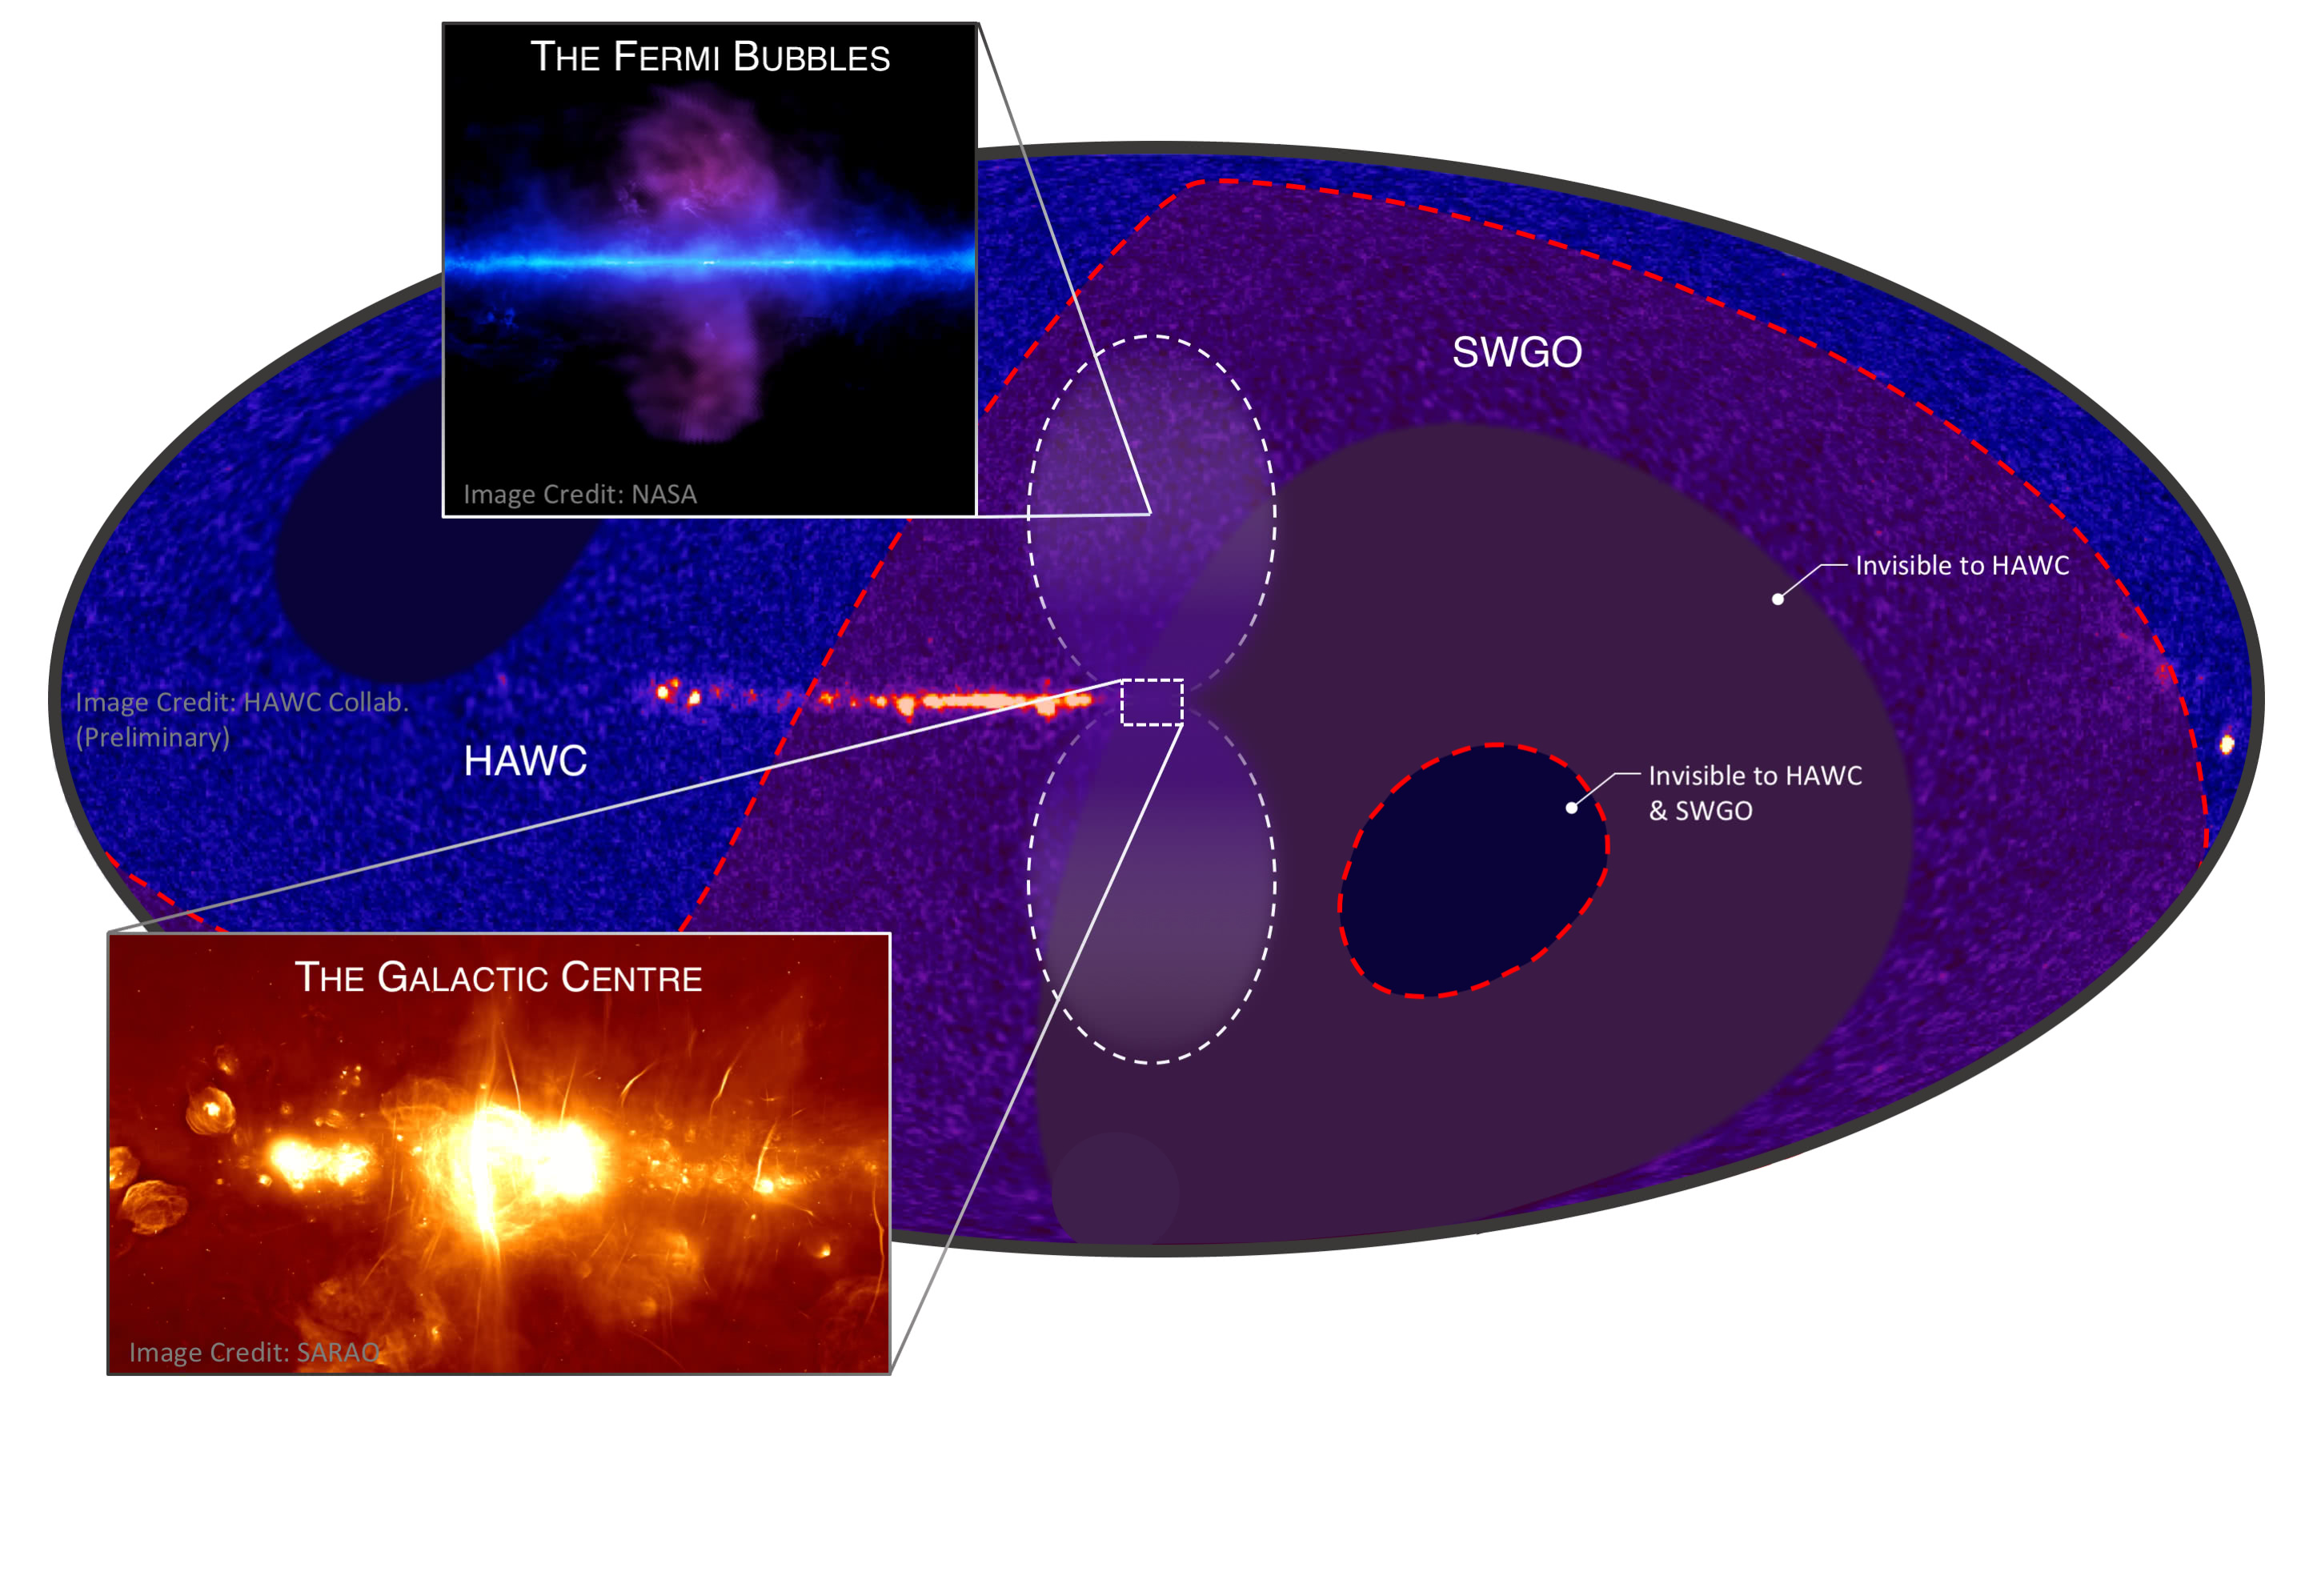 Gamma-ray sky image as seen by the (current) HAWC and (future) SWGO observatories (Credit: Richard White, MPIK)